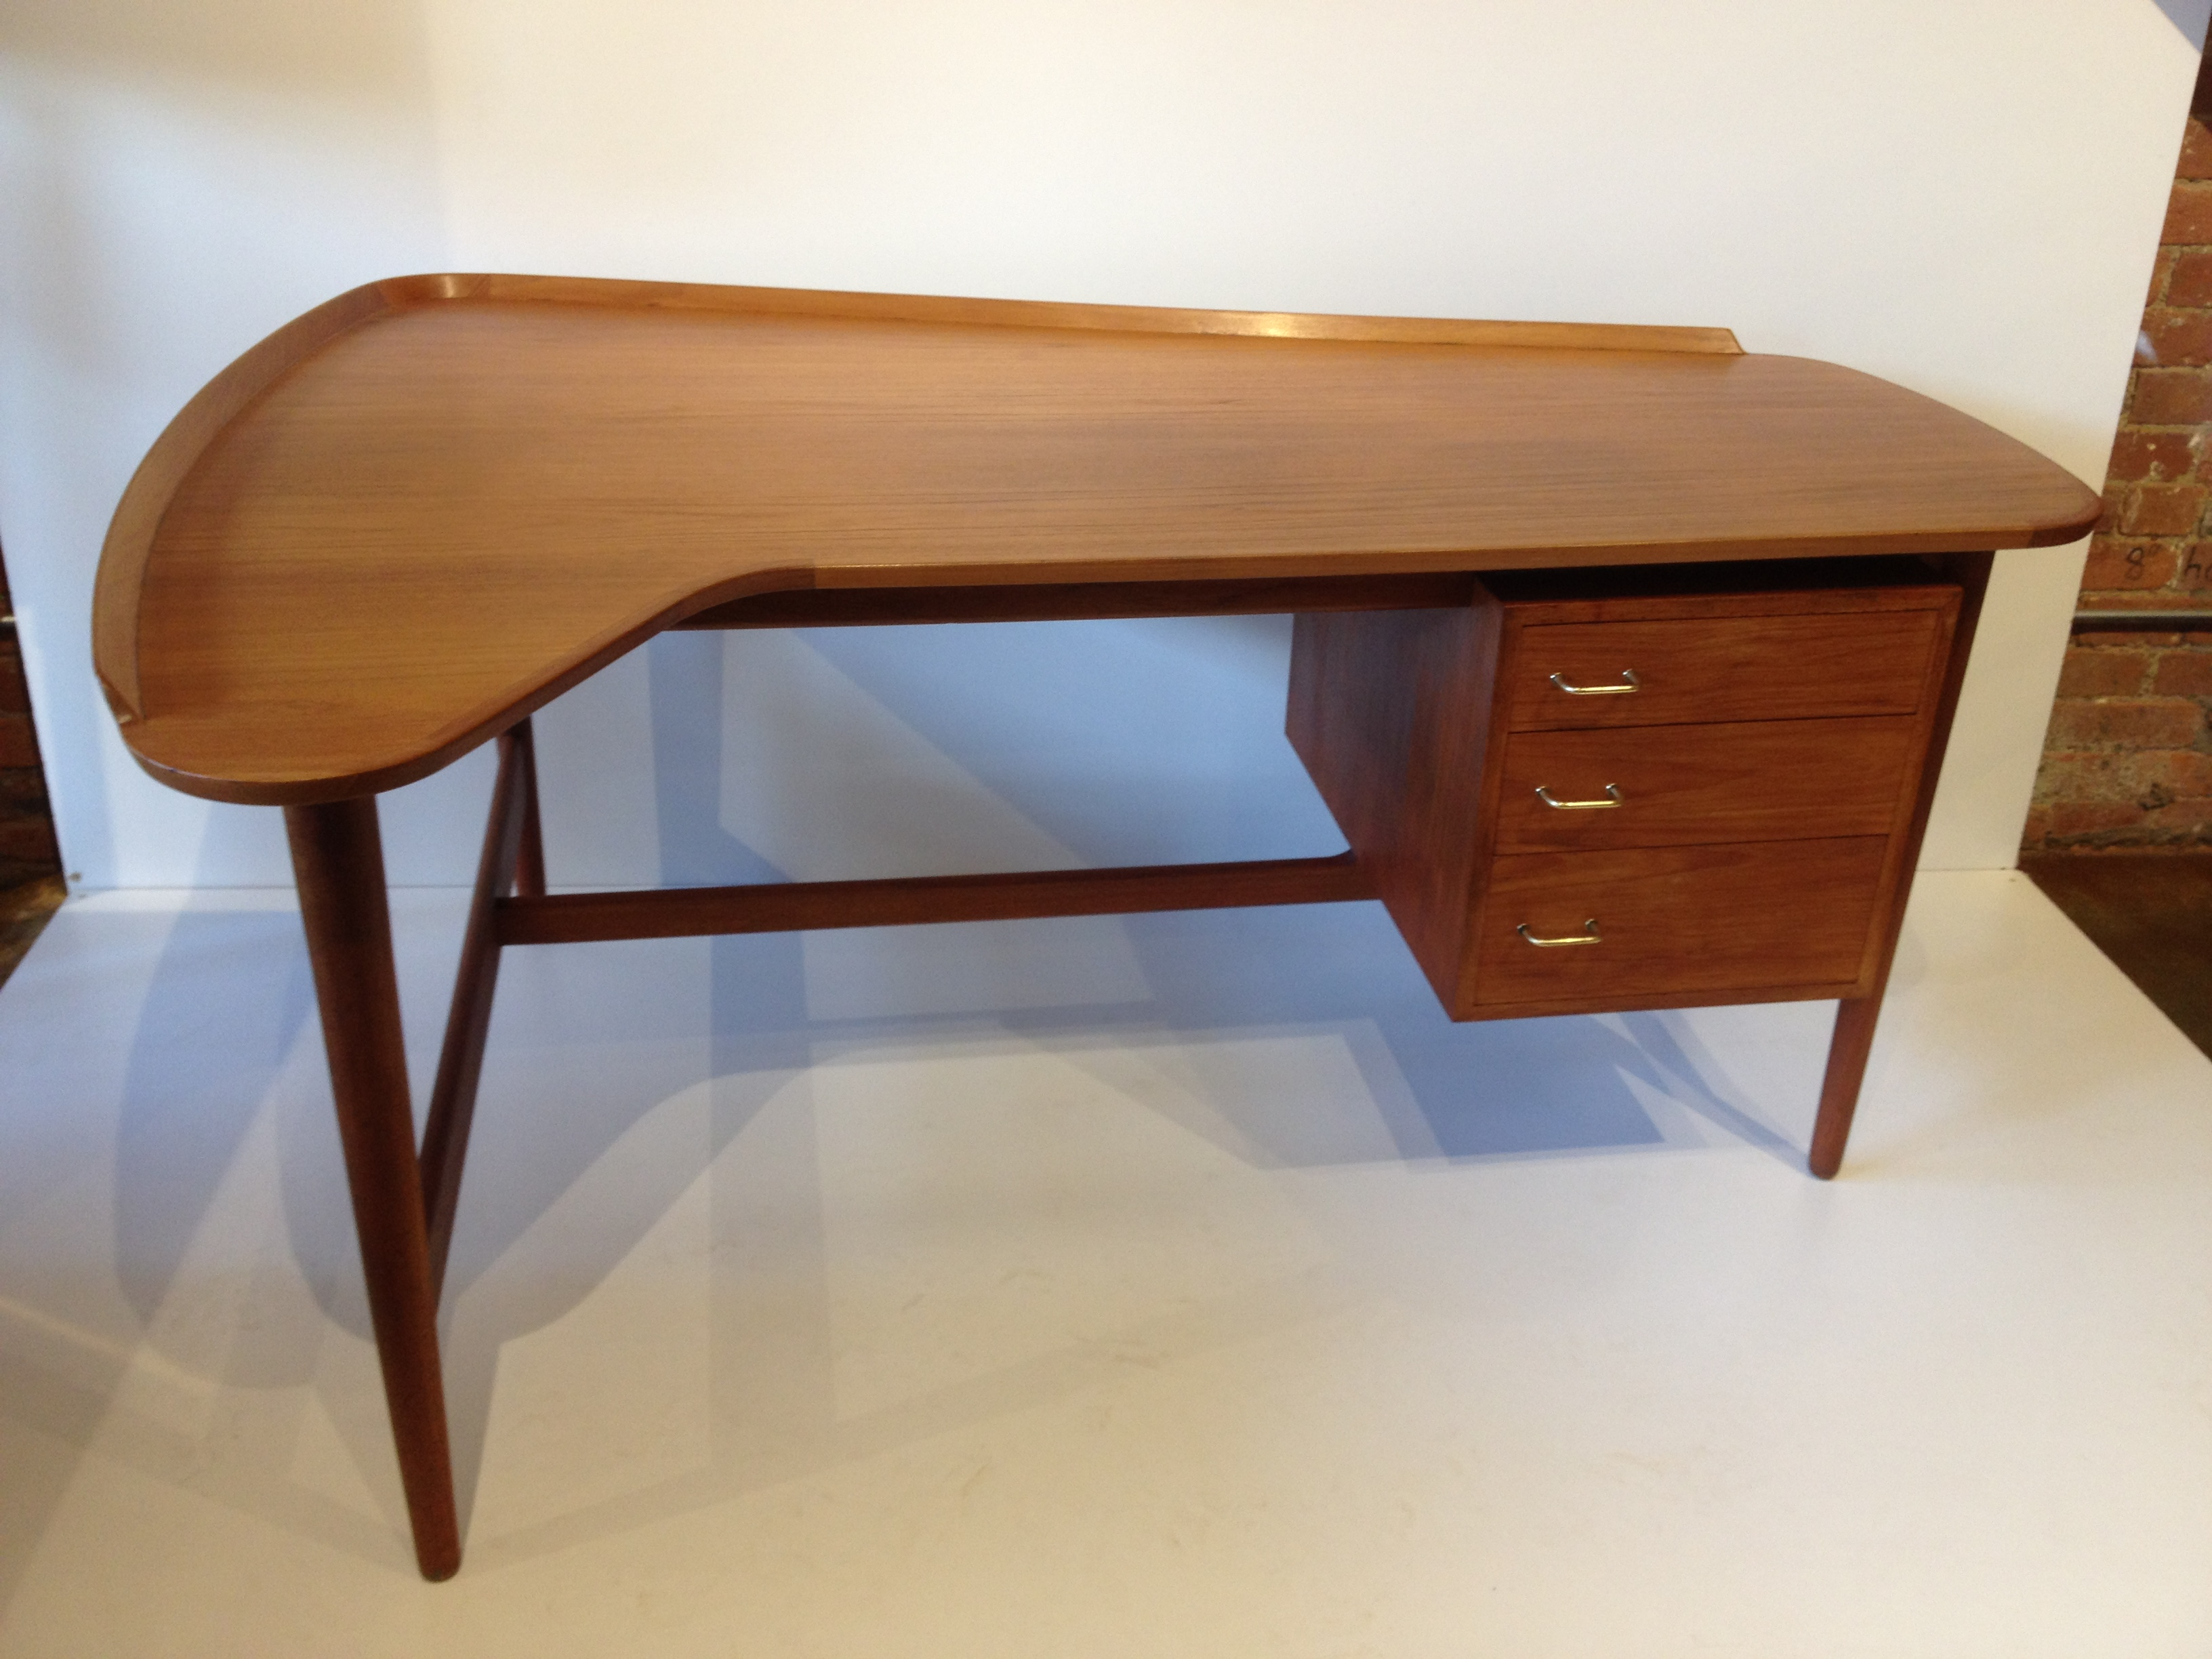 hamilton architect shop kitchen drafting island sold wine signed table vintage desk